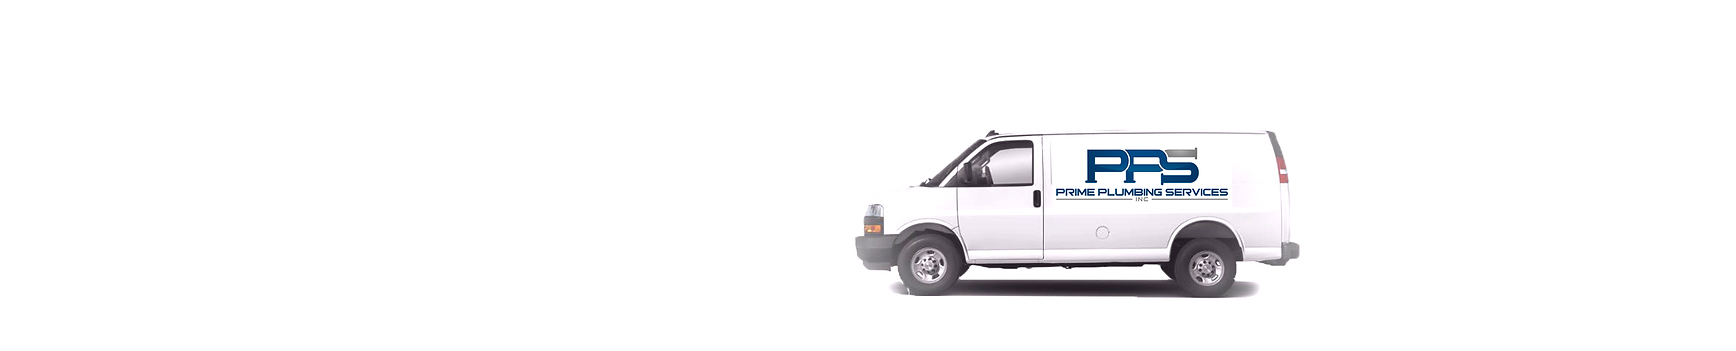 van-with-wave.png